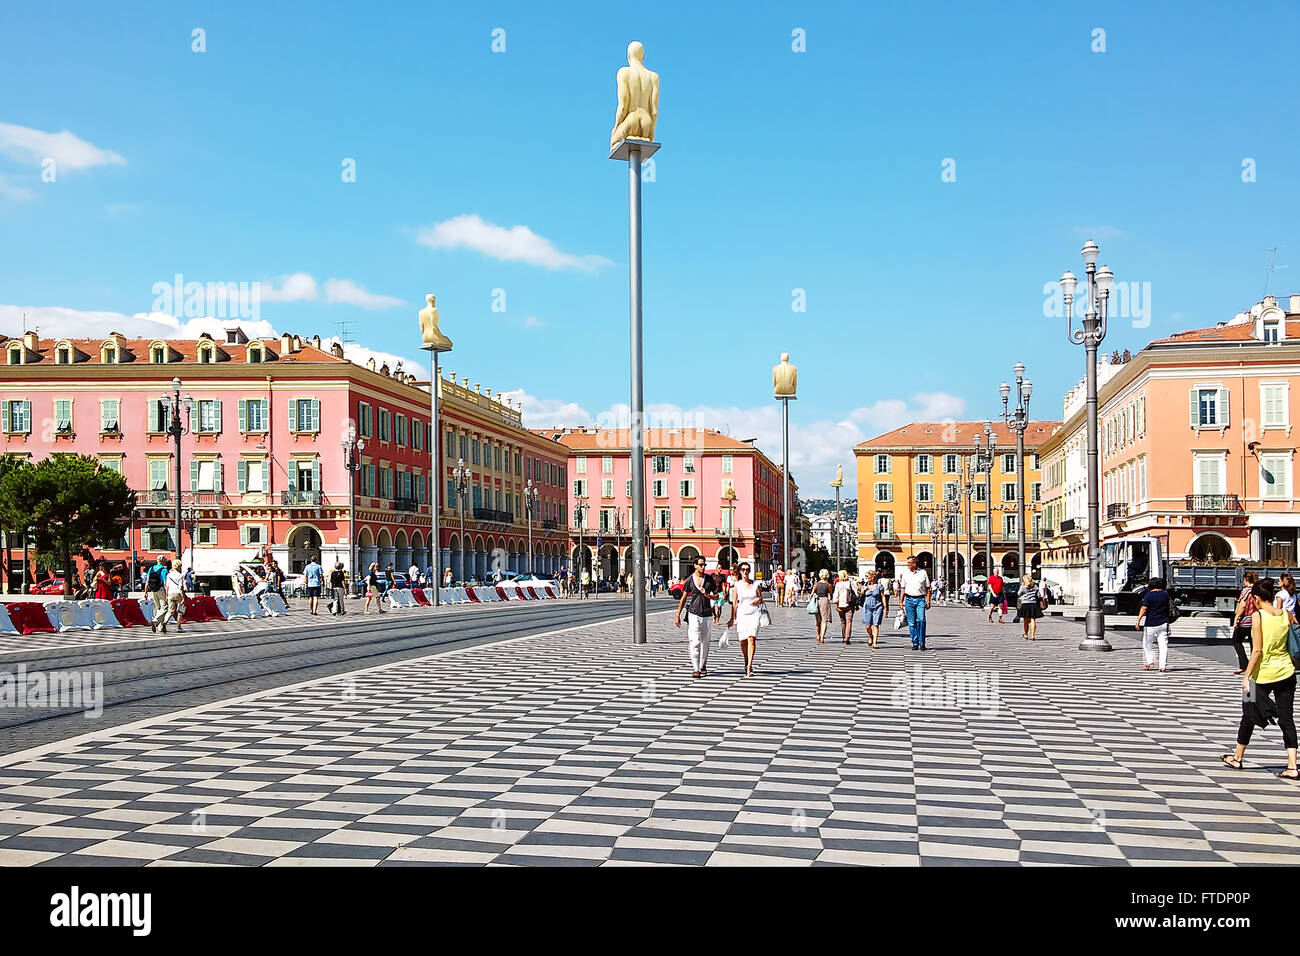 People walking on Place Massena in Nice, France. - Stock Image